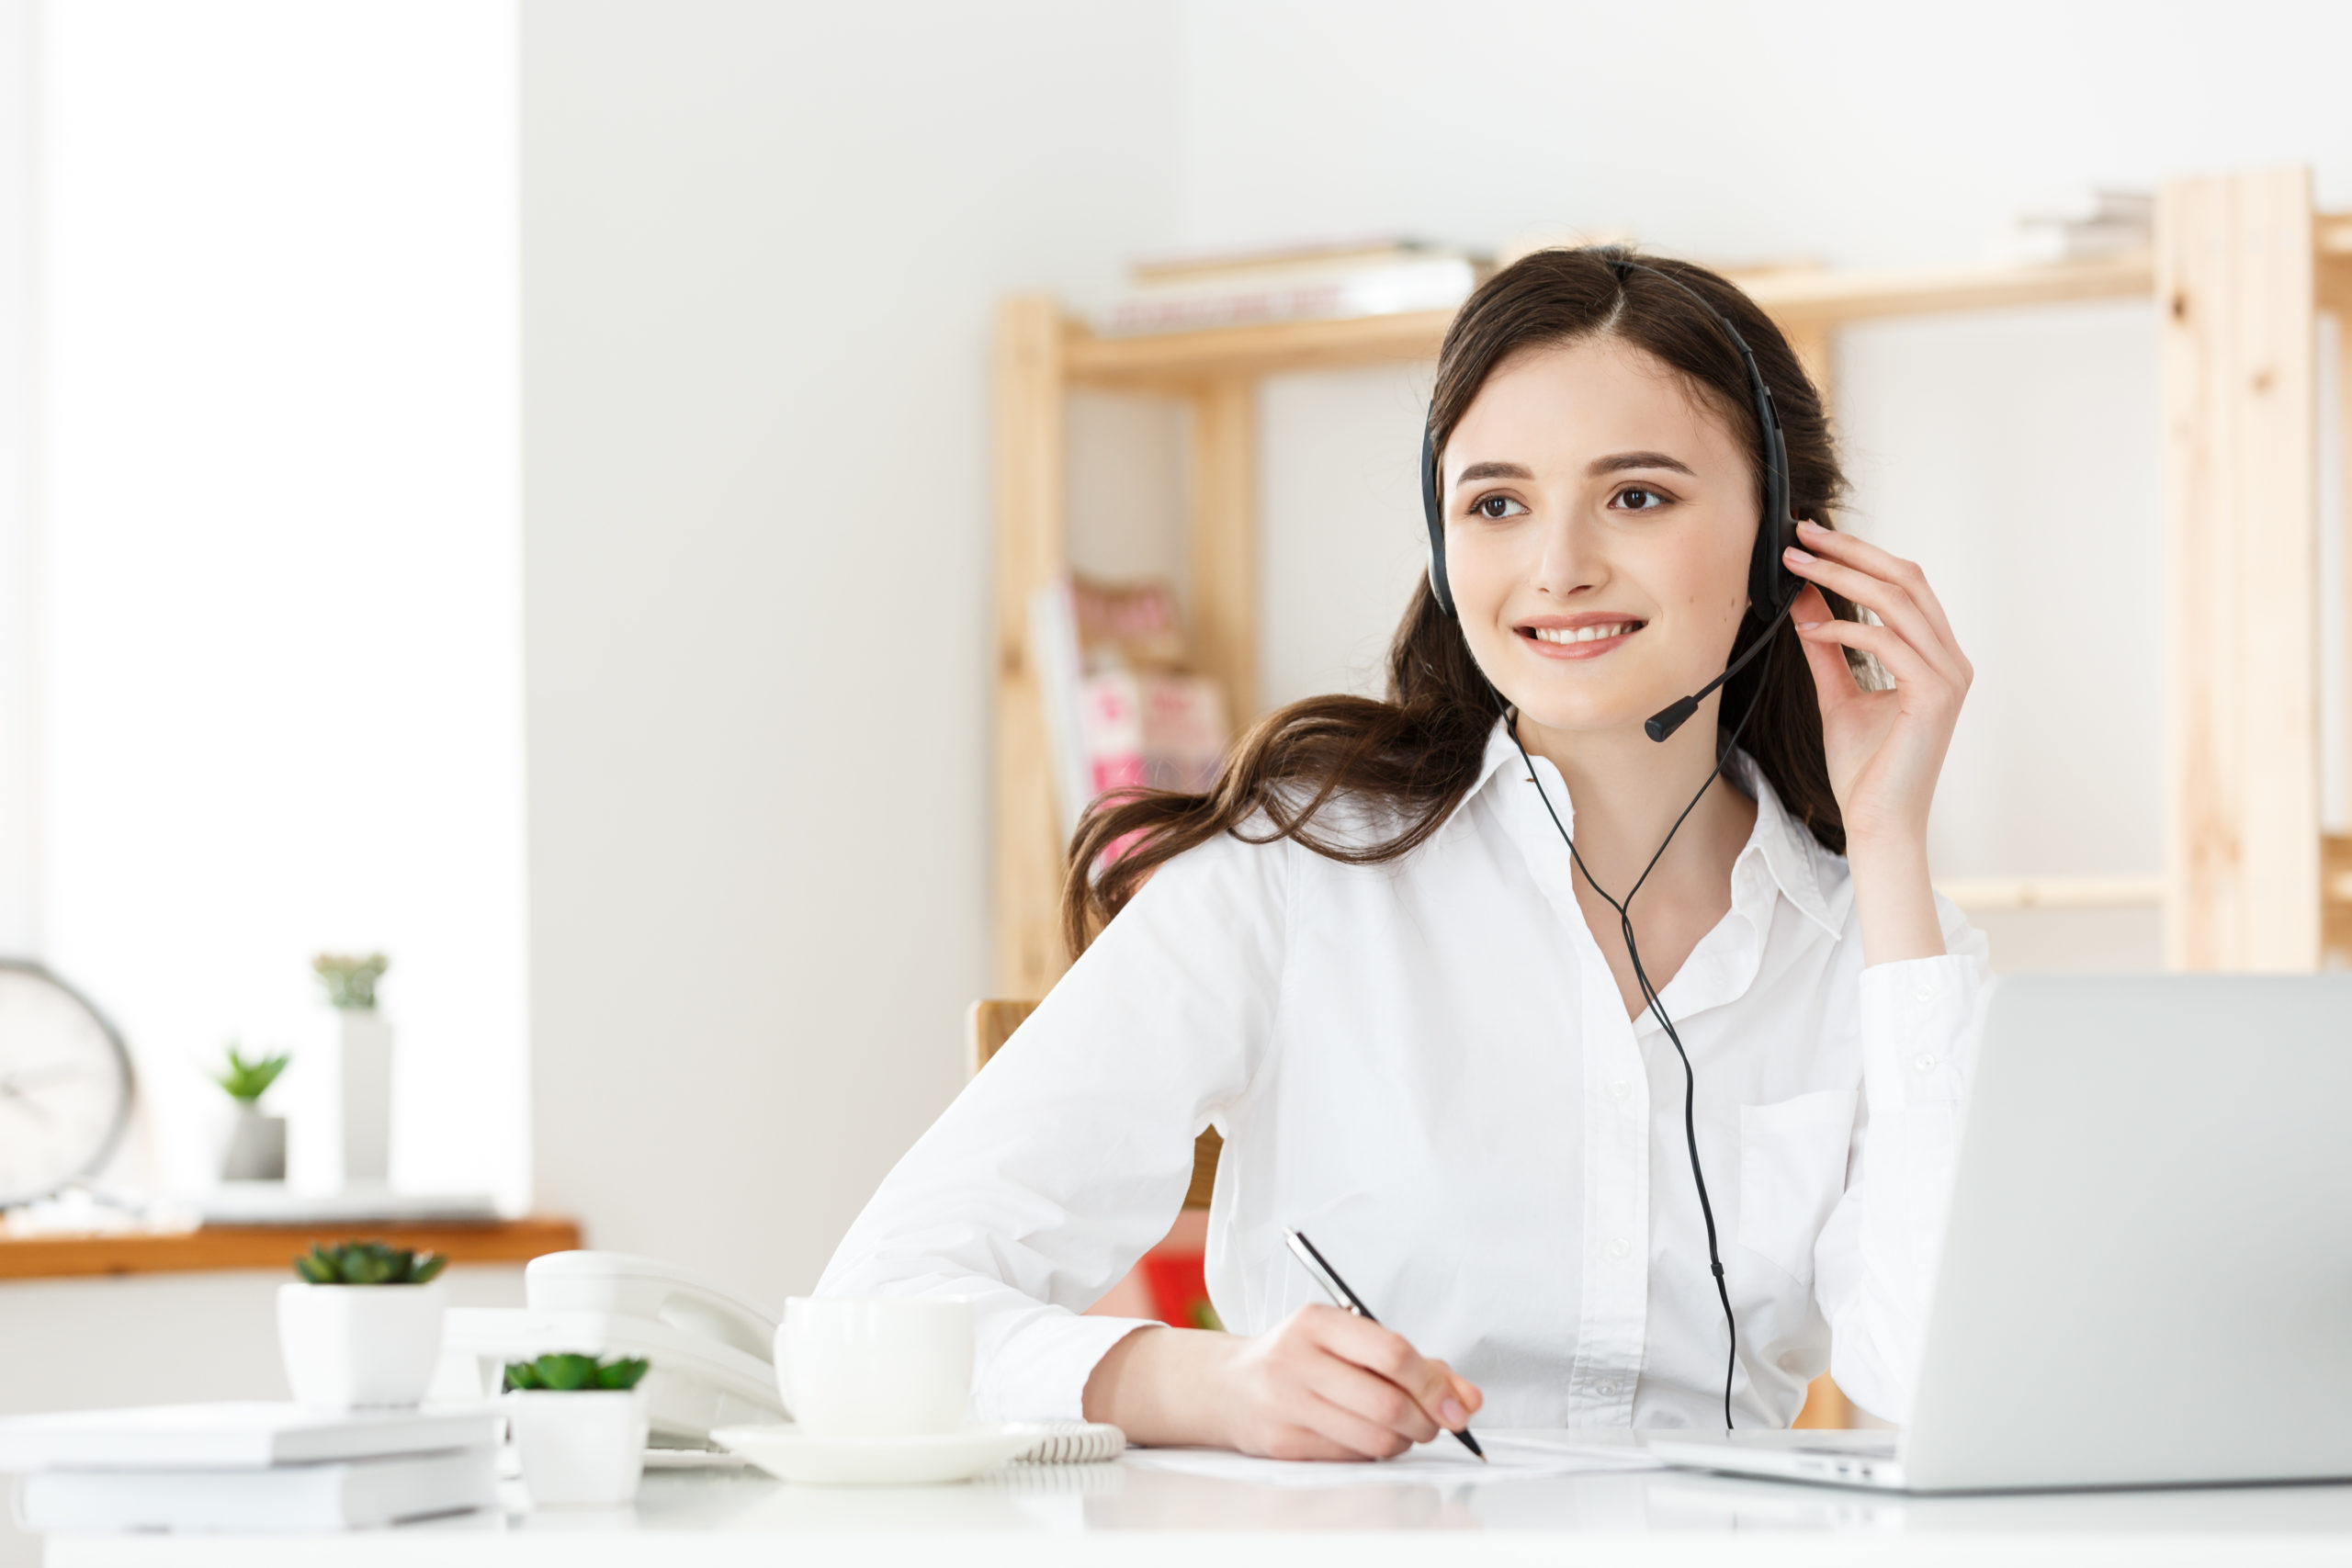 Call Center Concept: Portrait of happy smiling female customer support phone operator at workplace